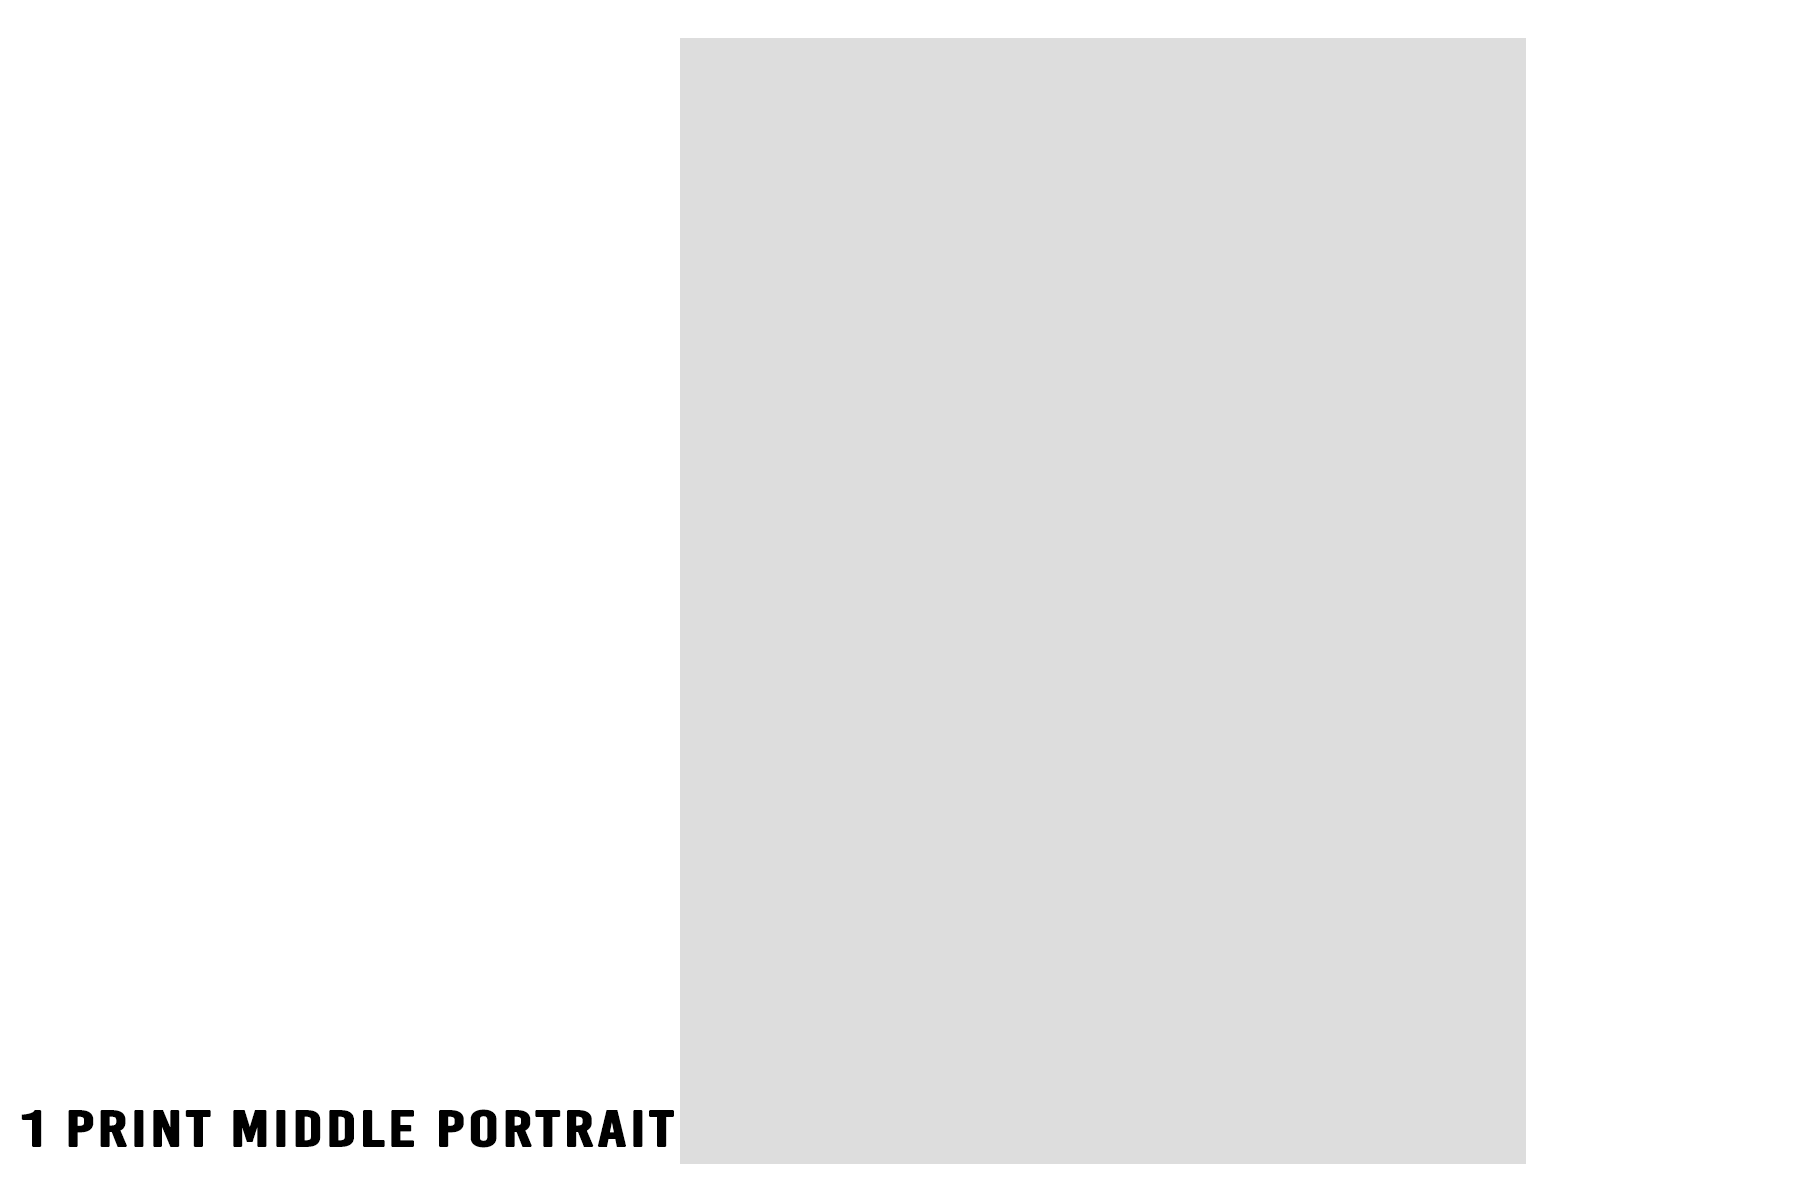 1-print-middle-portrait